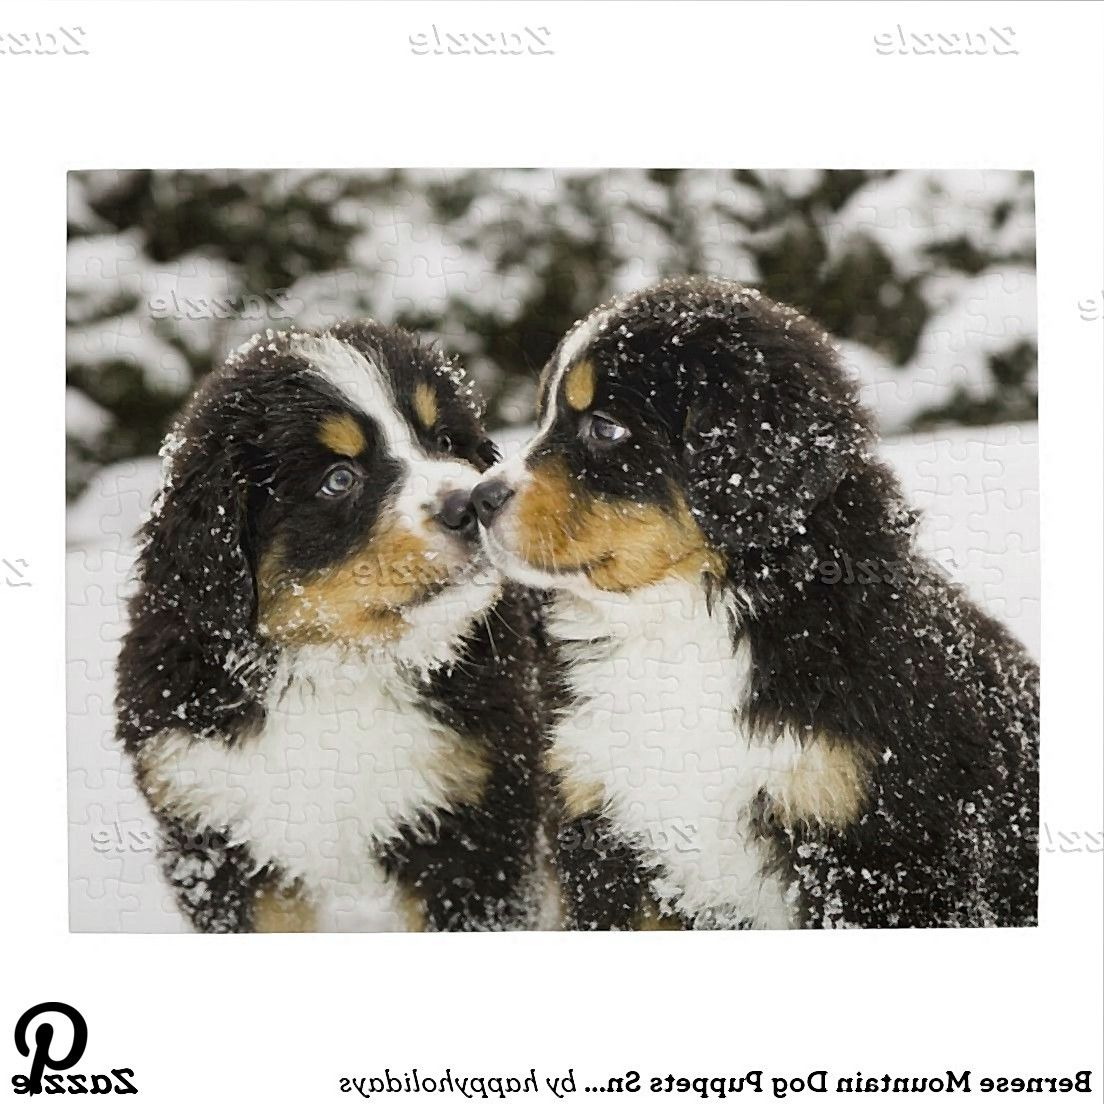 Bernese Mountain Dog Puppets Sniff Each Other Jigsaw Puzzle Bernese Mountain Dog Puppets Sniff Each Other Jigsaw Puzzle